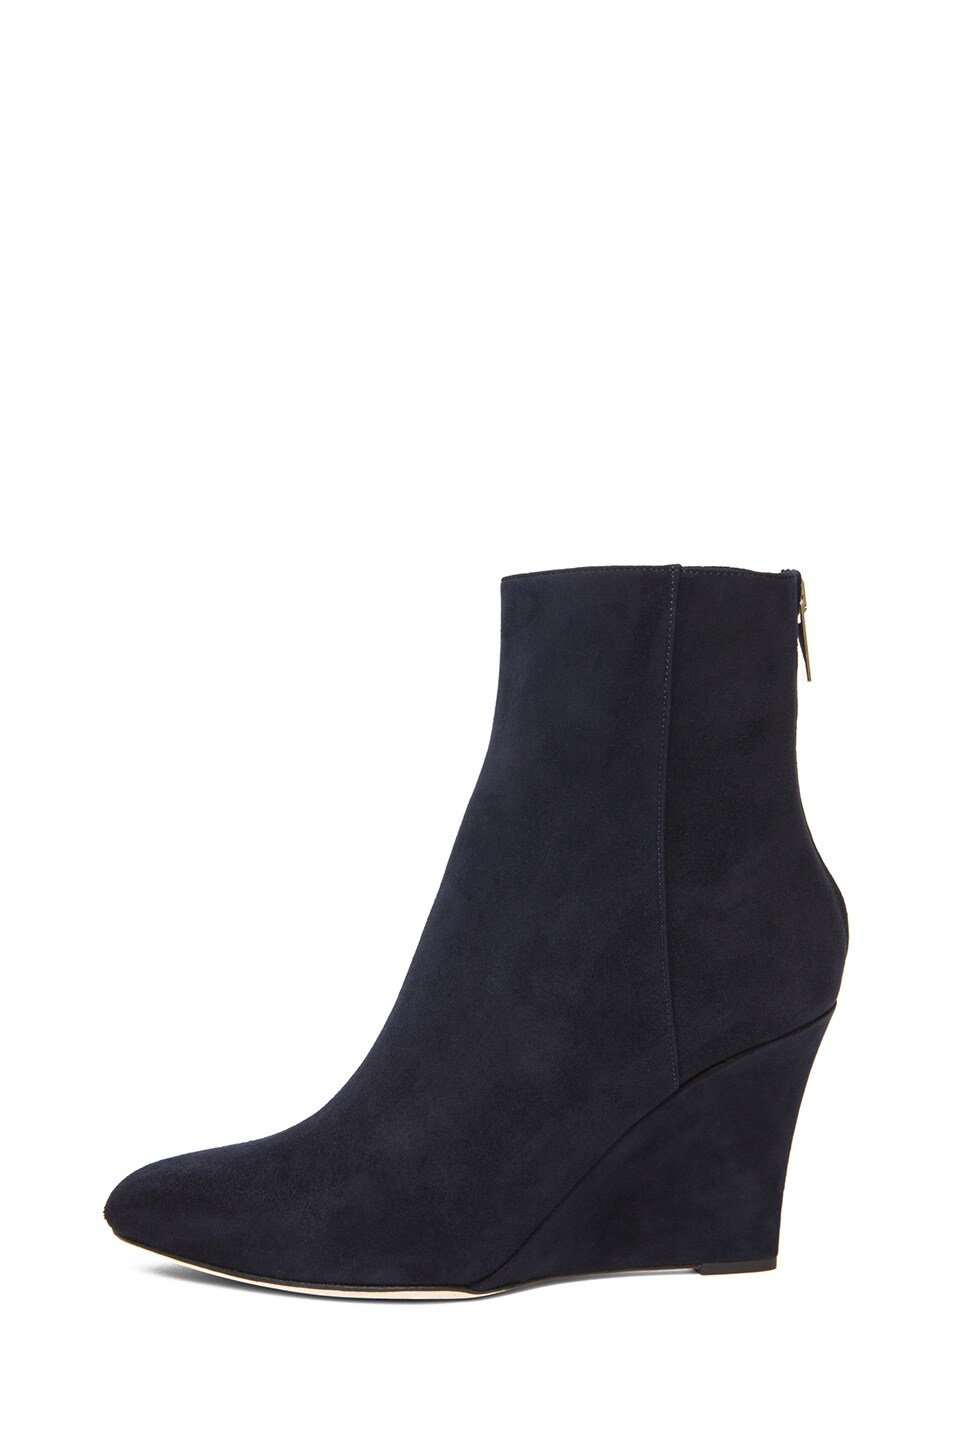 Image 1 of Jimmy Choo Mayor Suede 85mm Wedge Ankle Boot in Navy